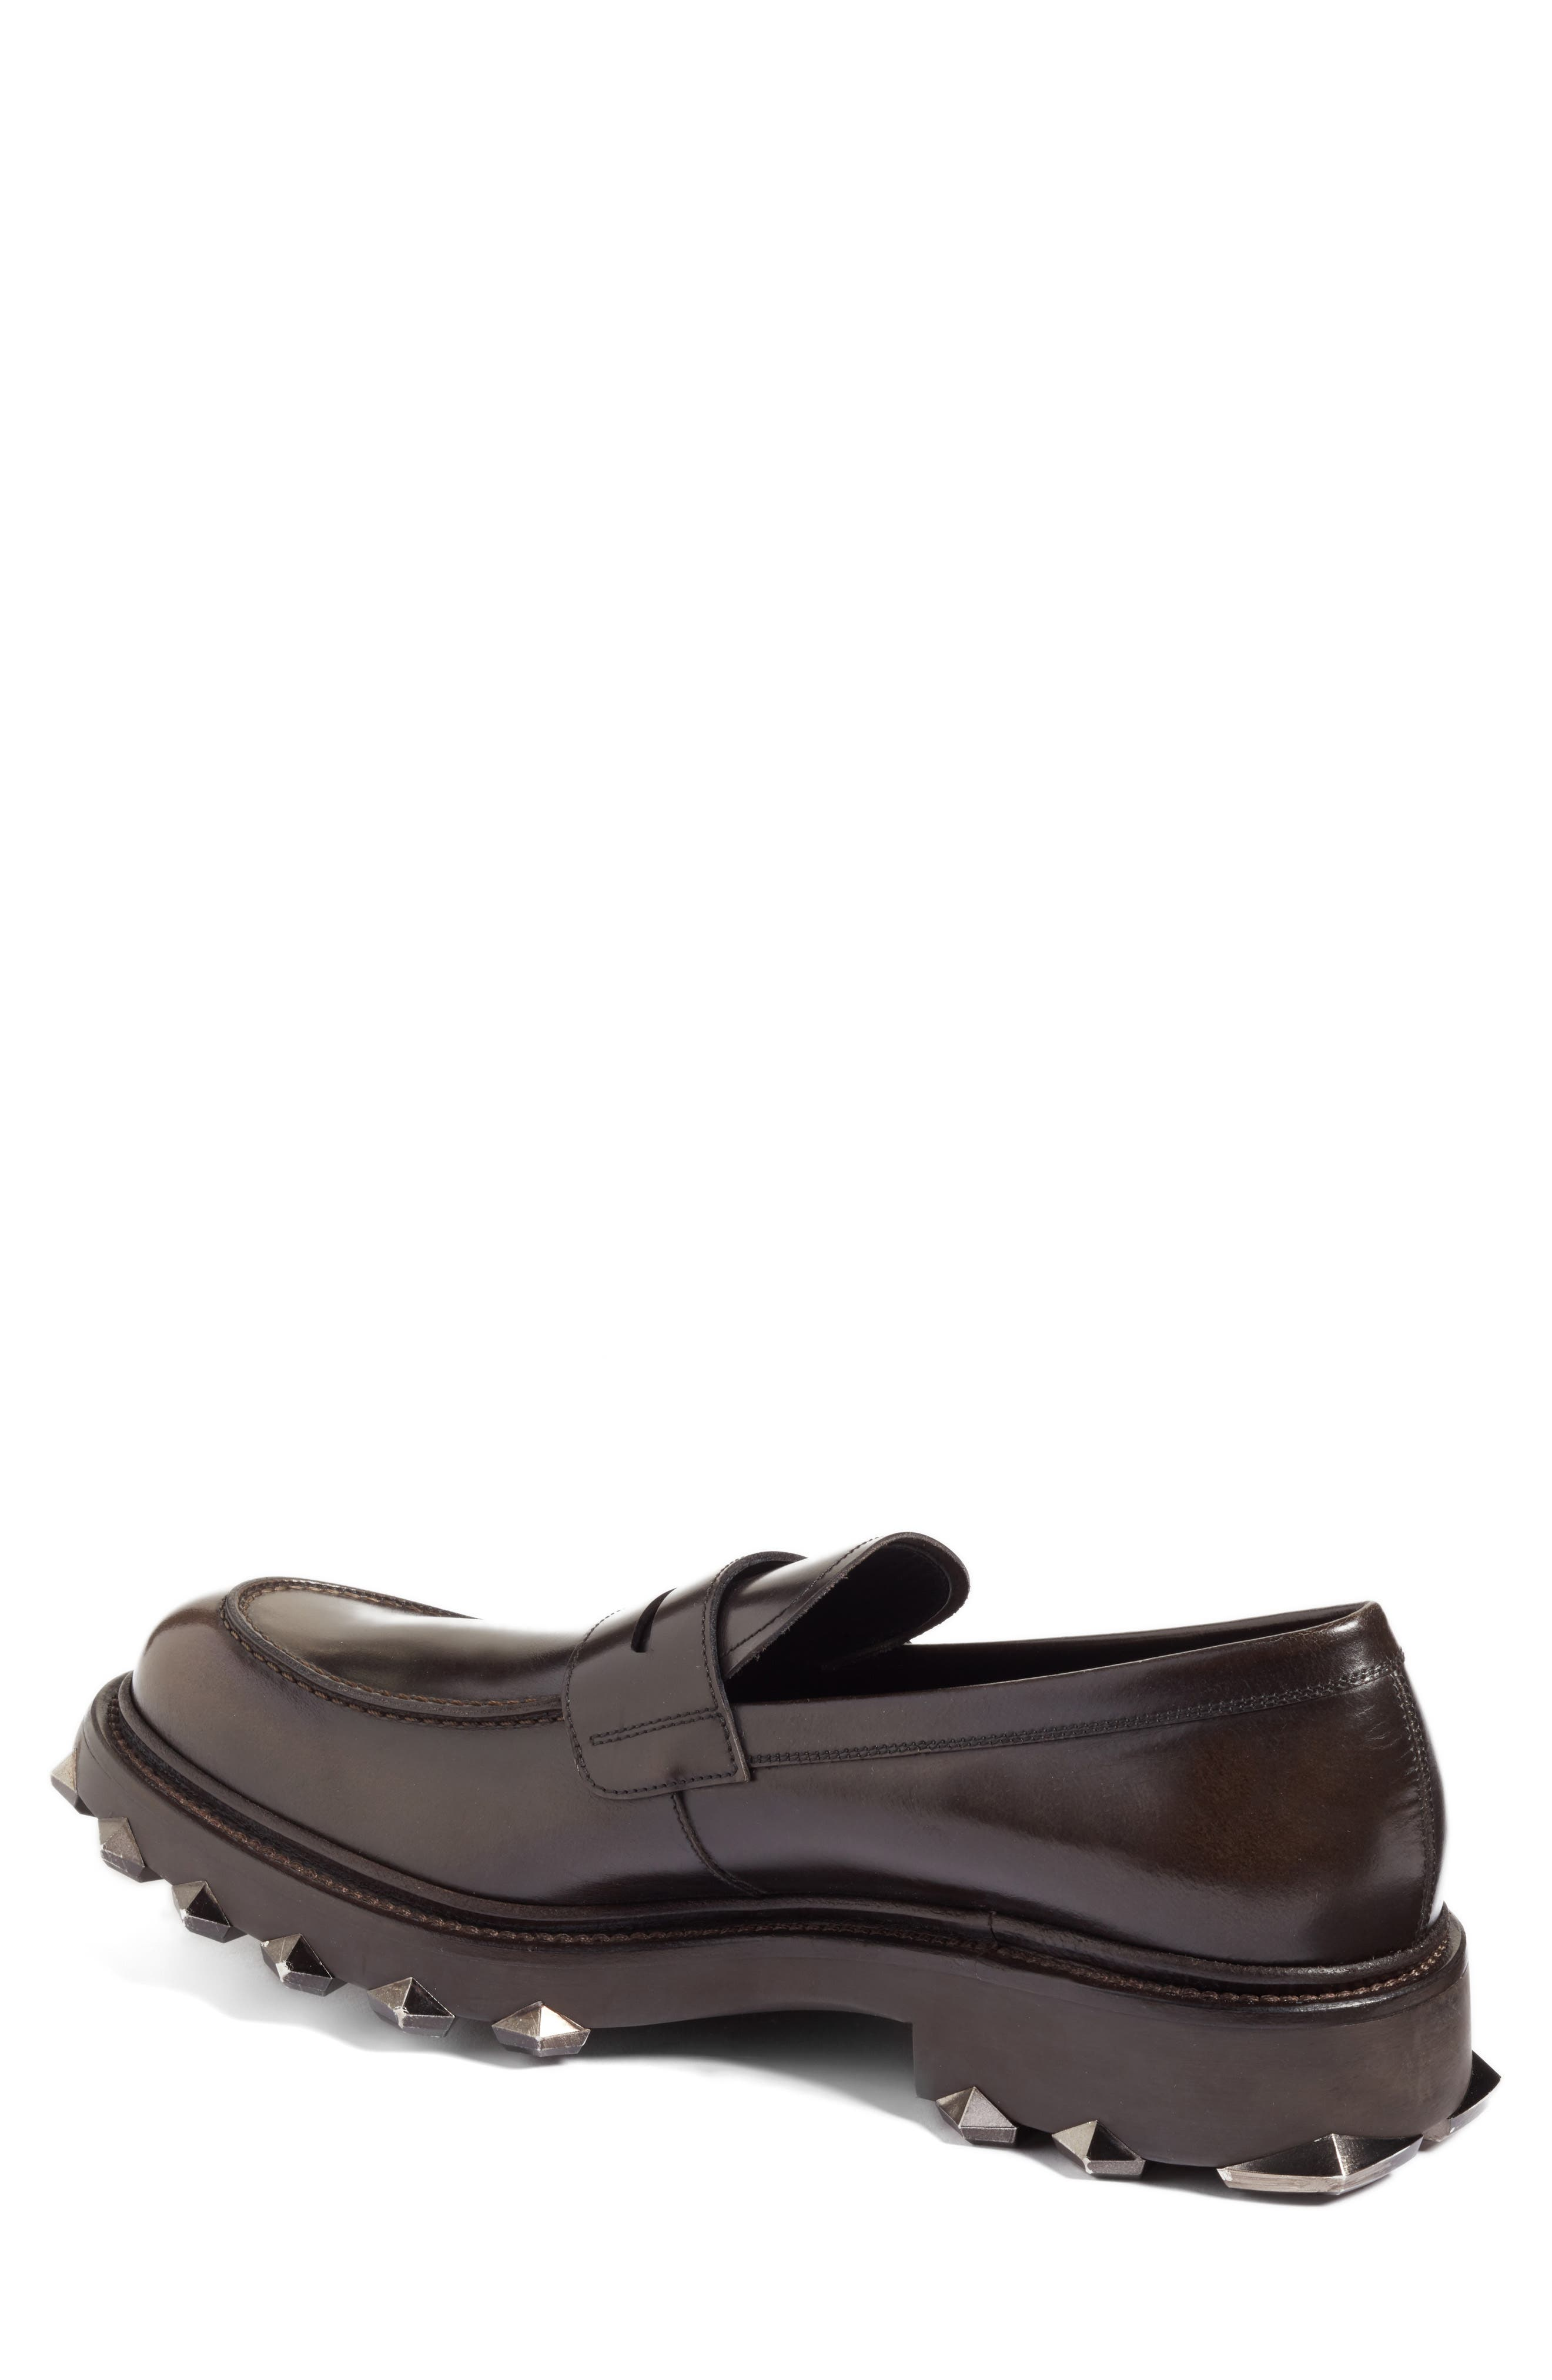 Alternate Image 2  - Salvatore Ferragamo Penny Loafer (Men)